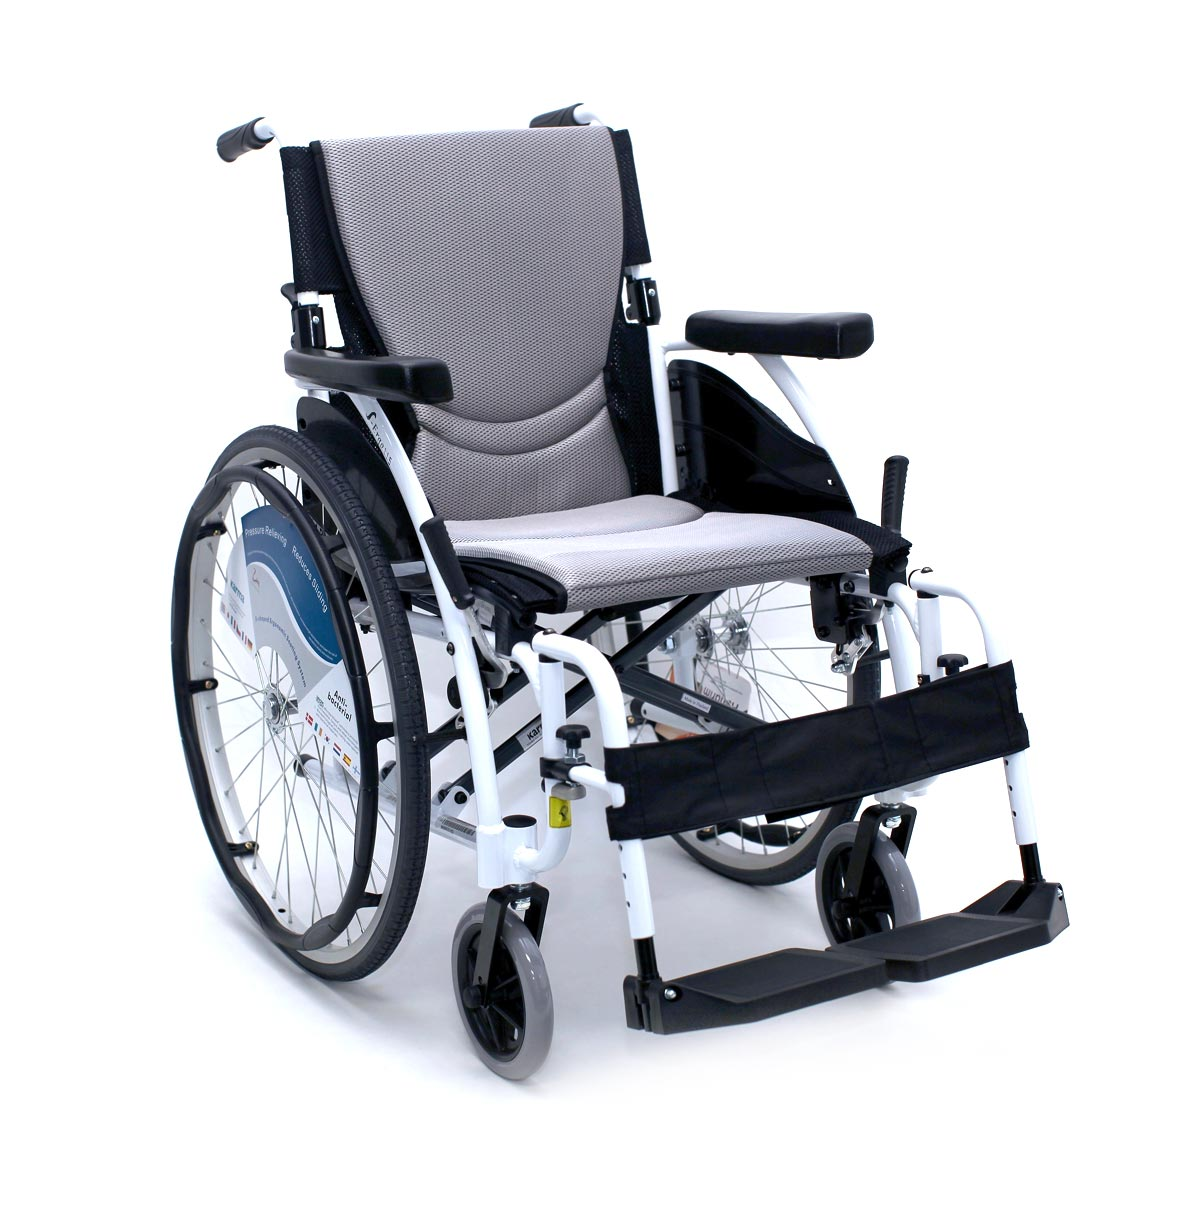 S-Ergo Alpine White – 25 lbs Ultralight White Wheelchair K0004